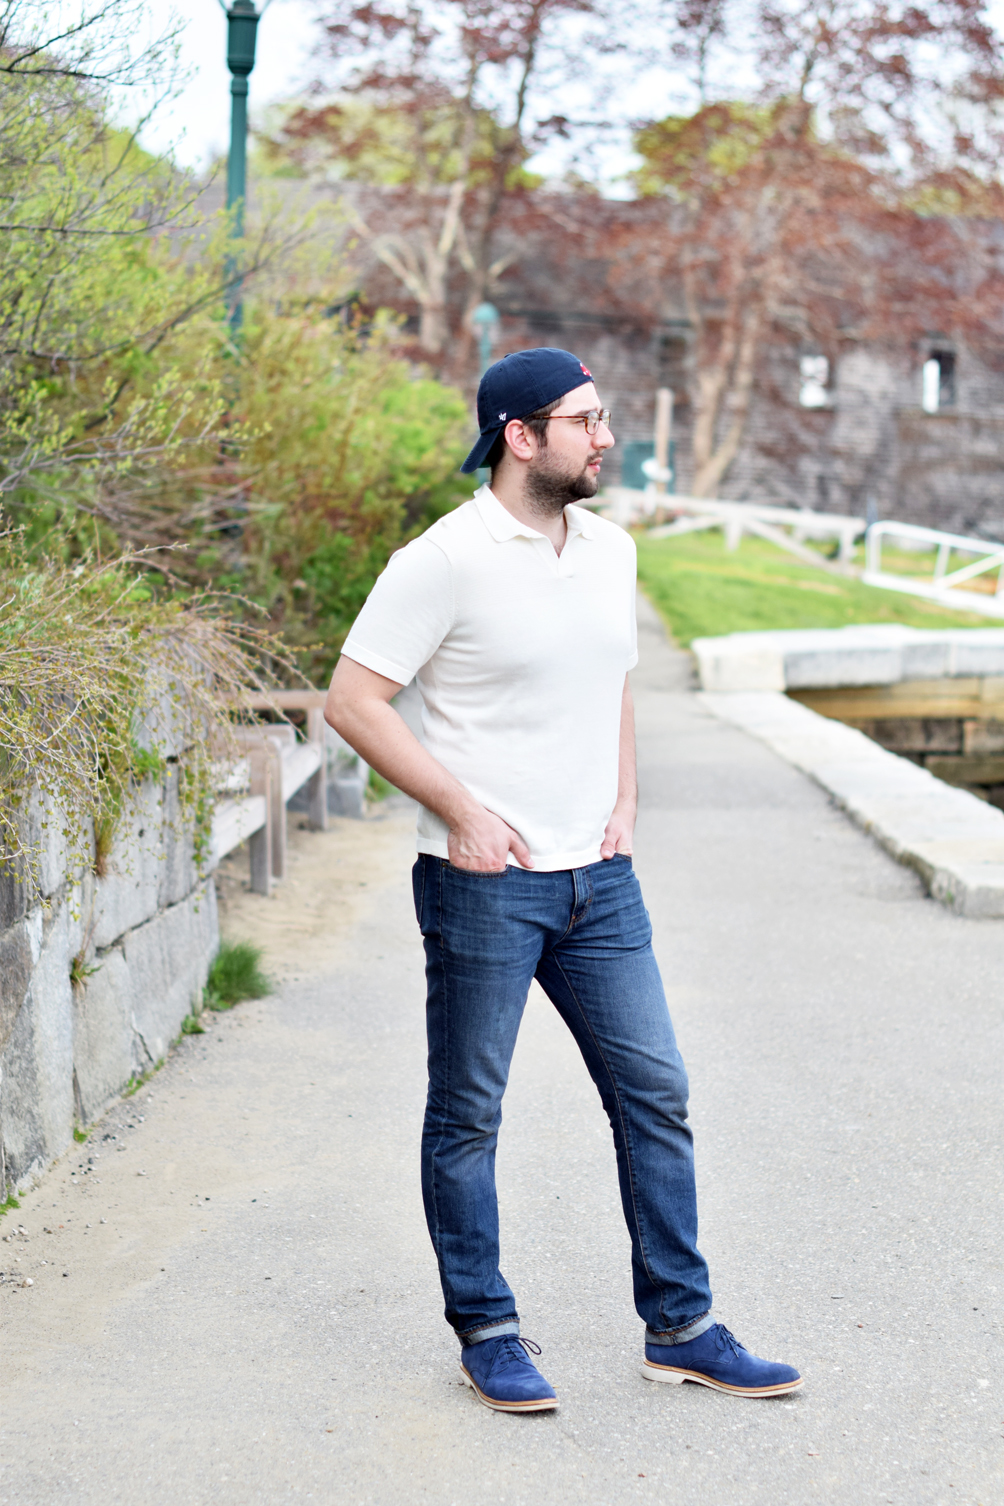 a gentle(man) friday, sweater polo with jeans, suede loafers, and a backwards baseball cap - one brass fox